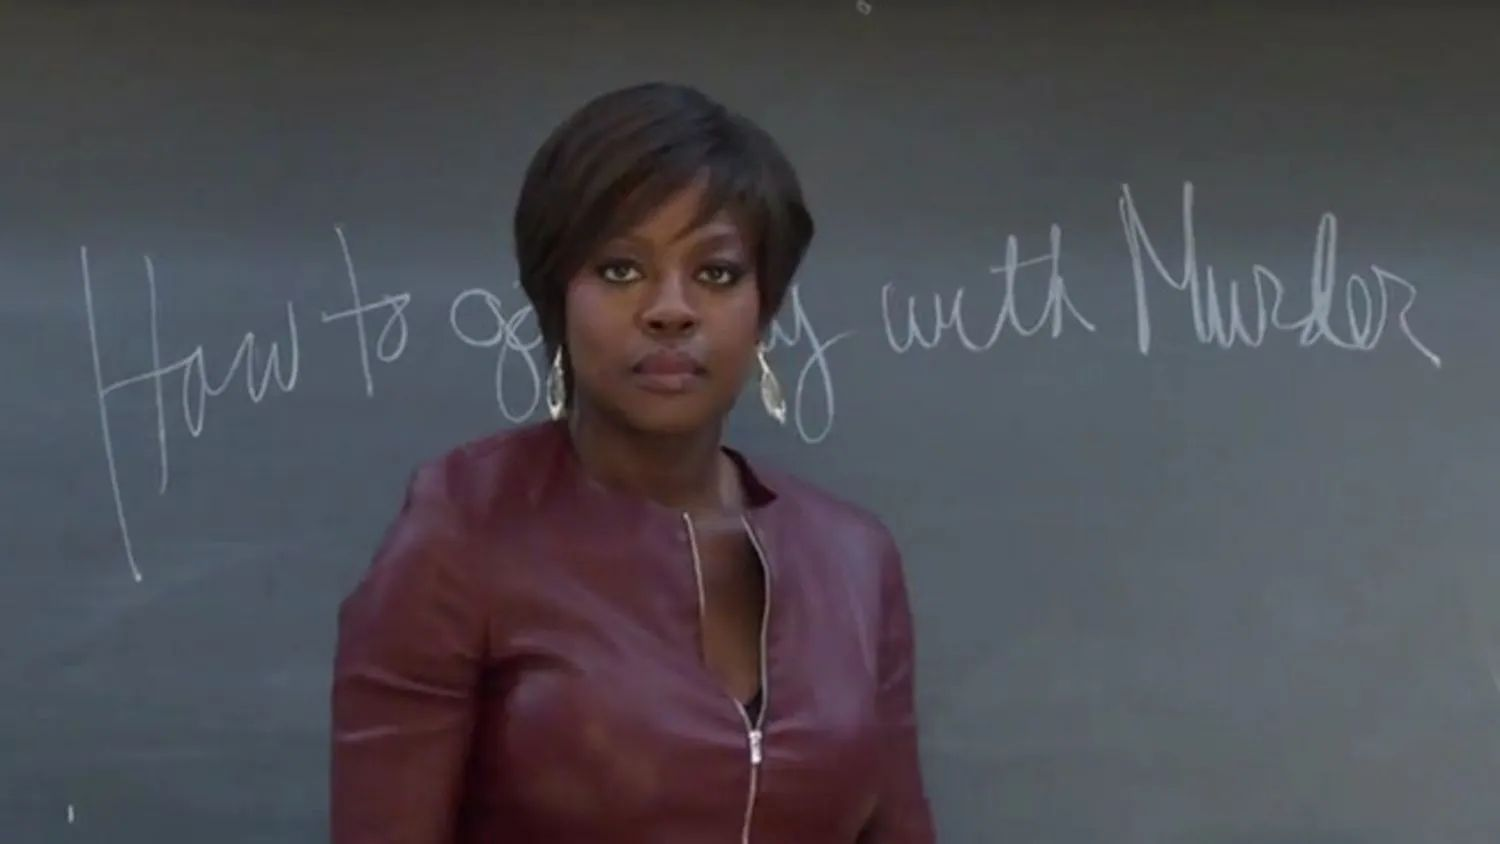 How To Get Away With Murder Episodes In Order